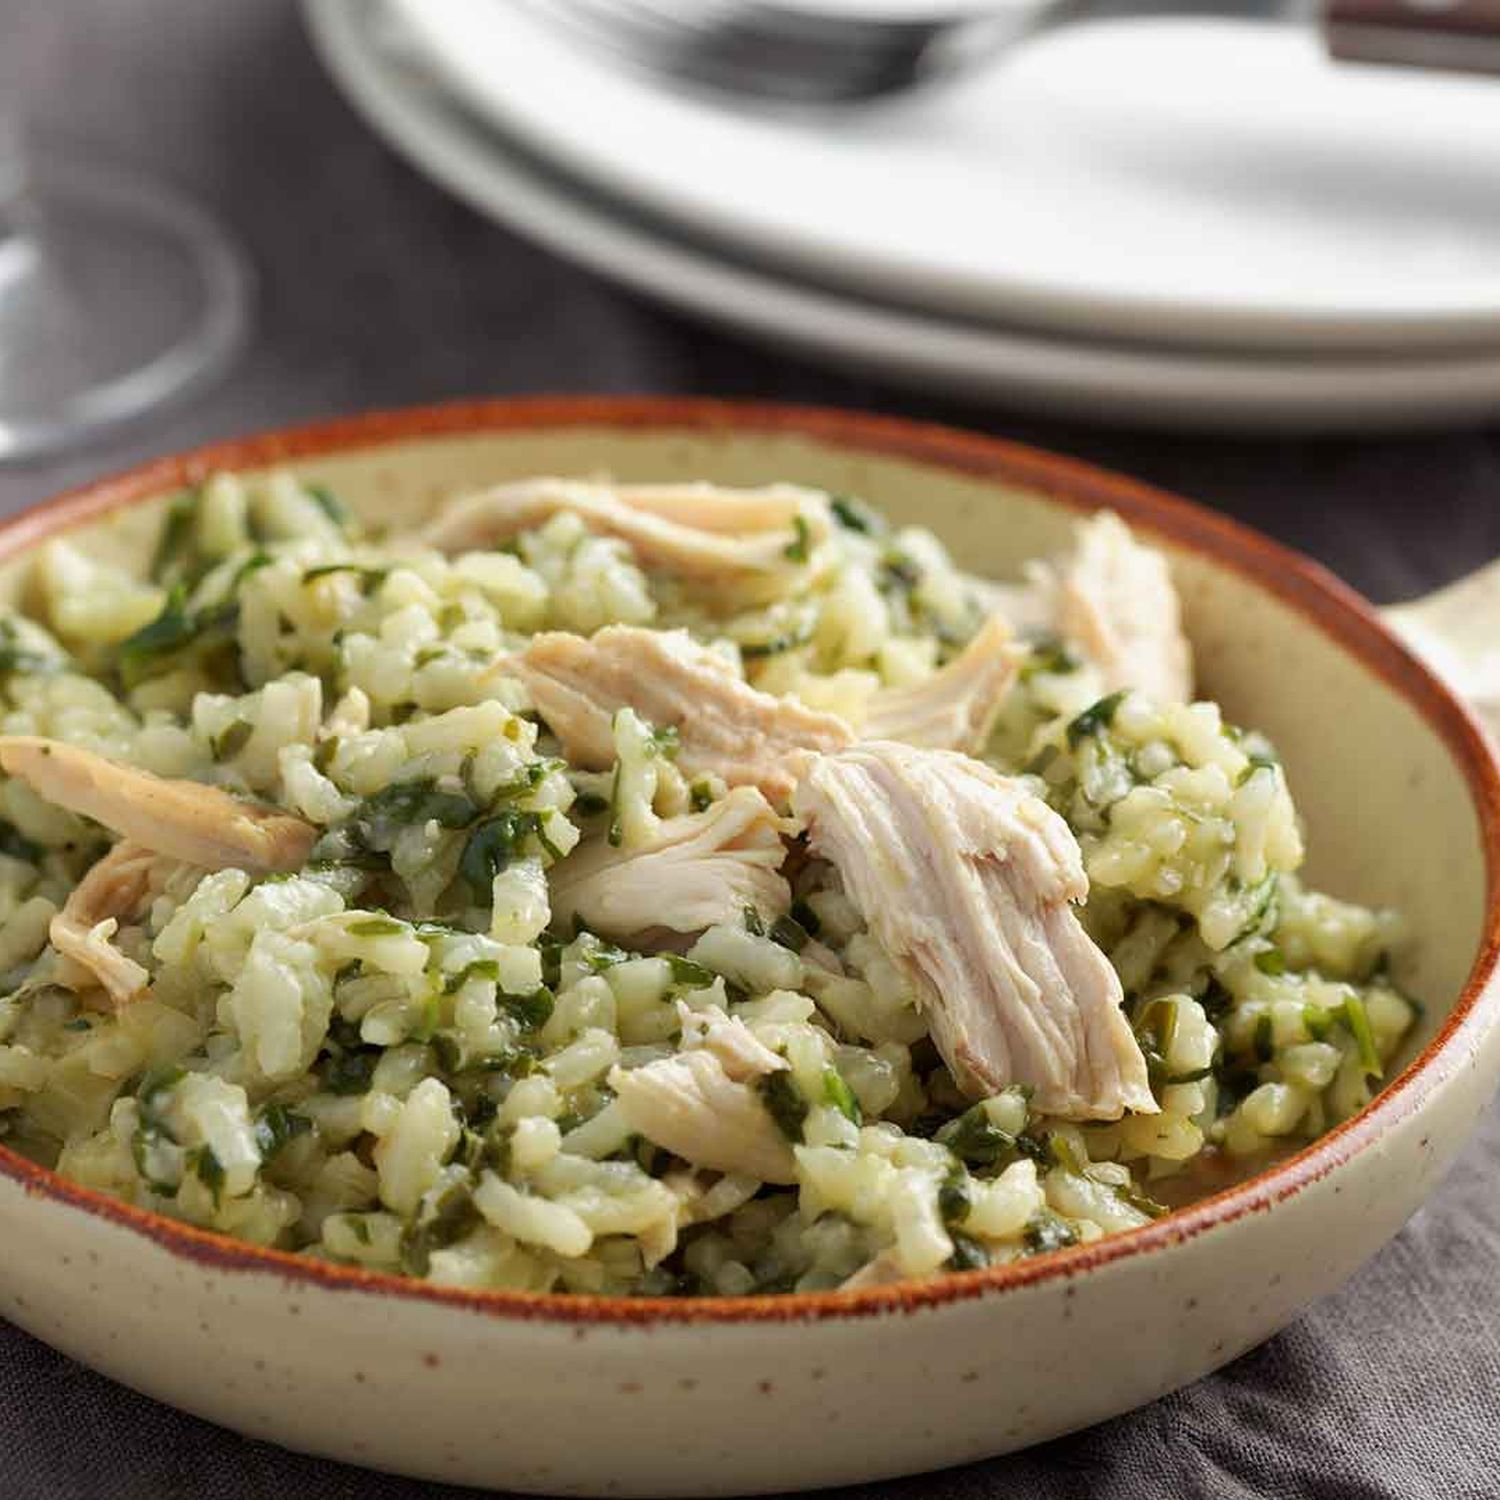 Wildreisrisotto mit Pesto-Huhn